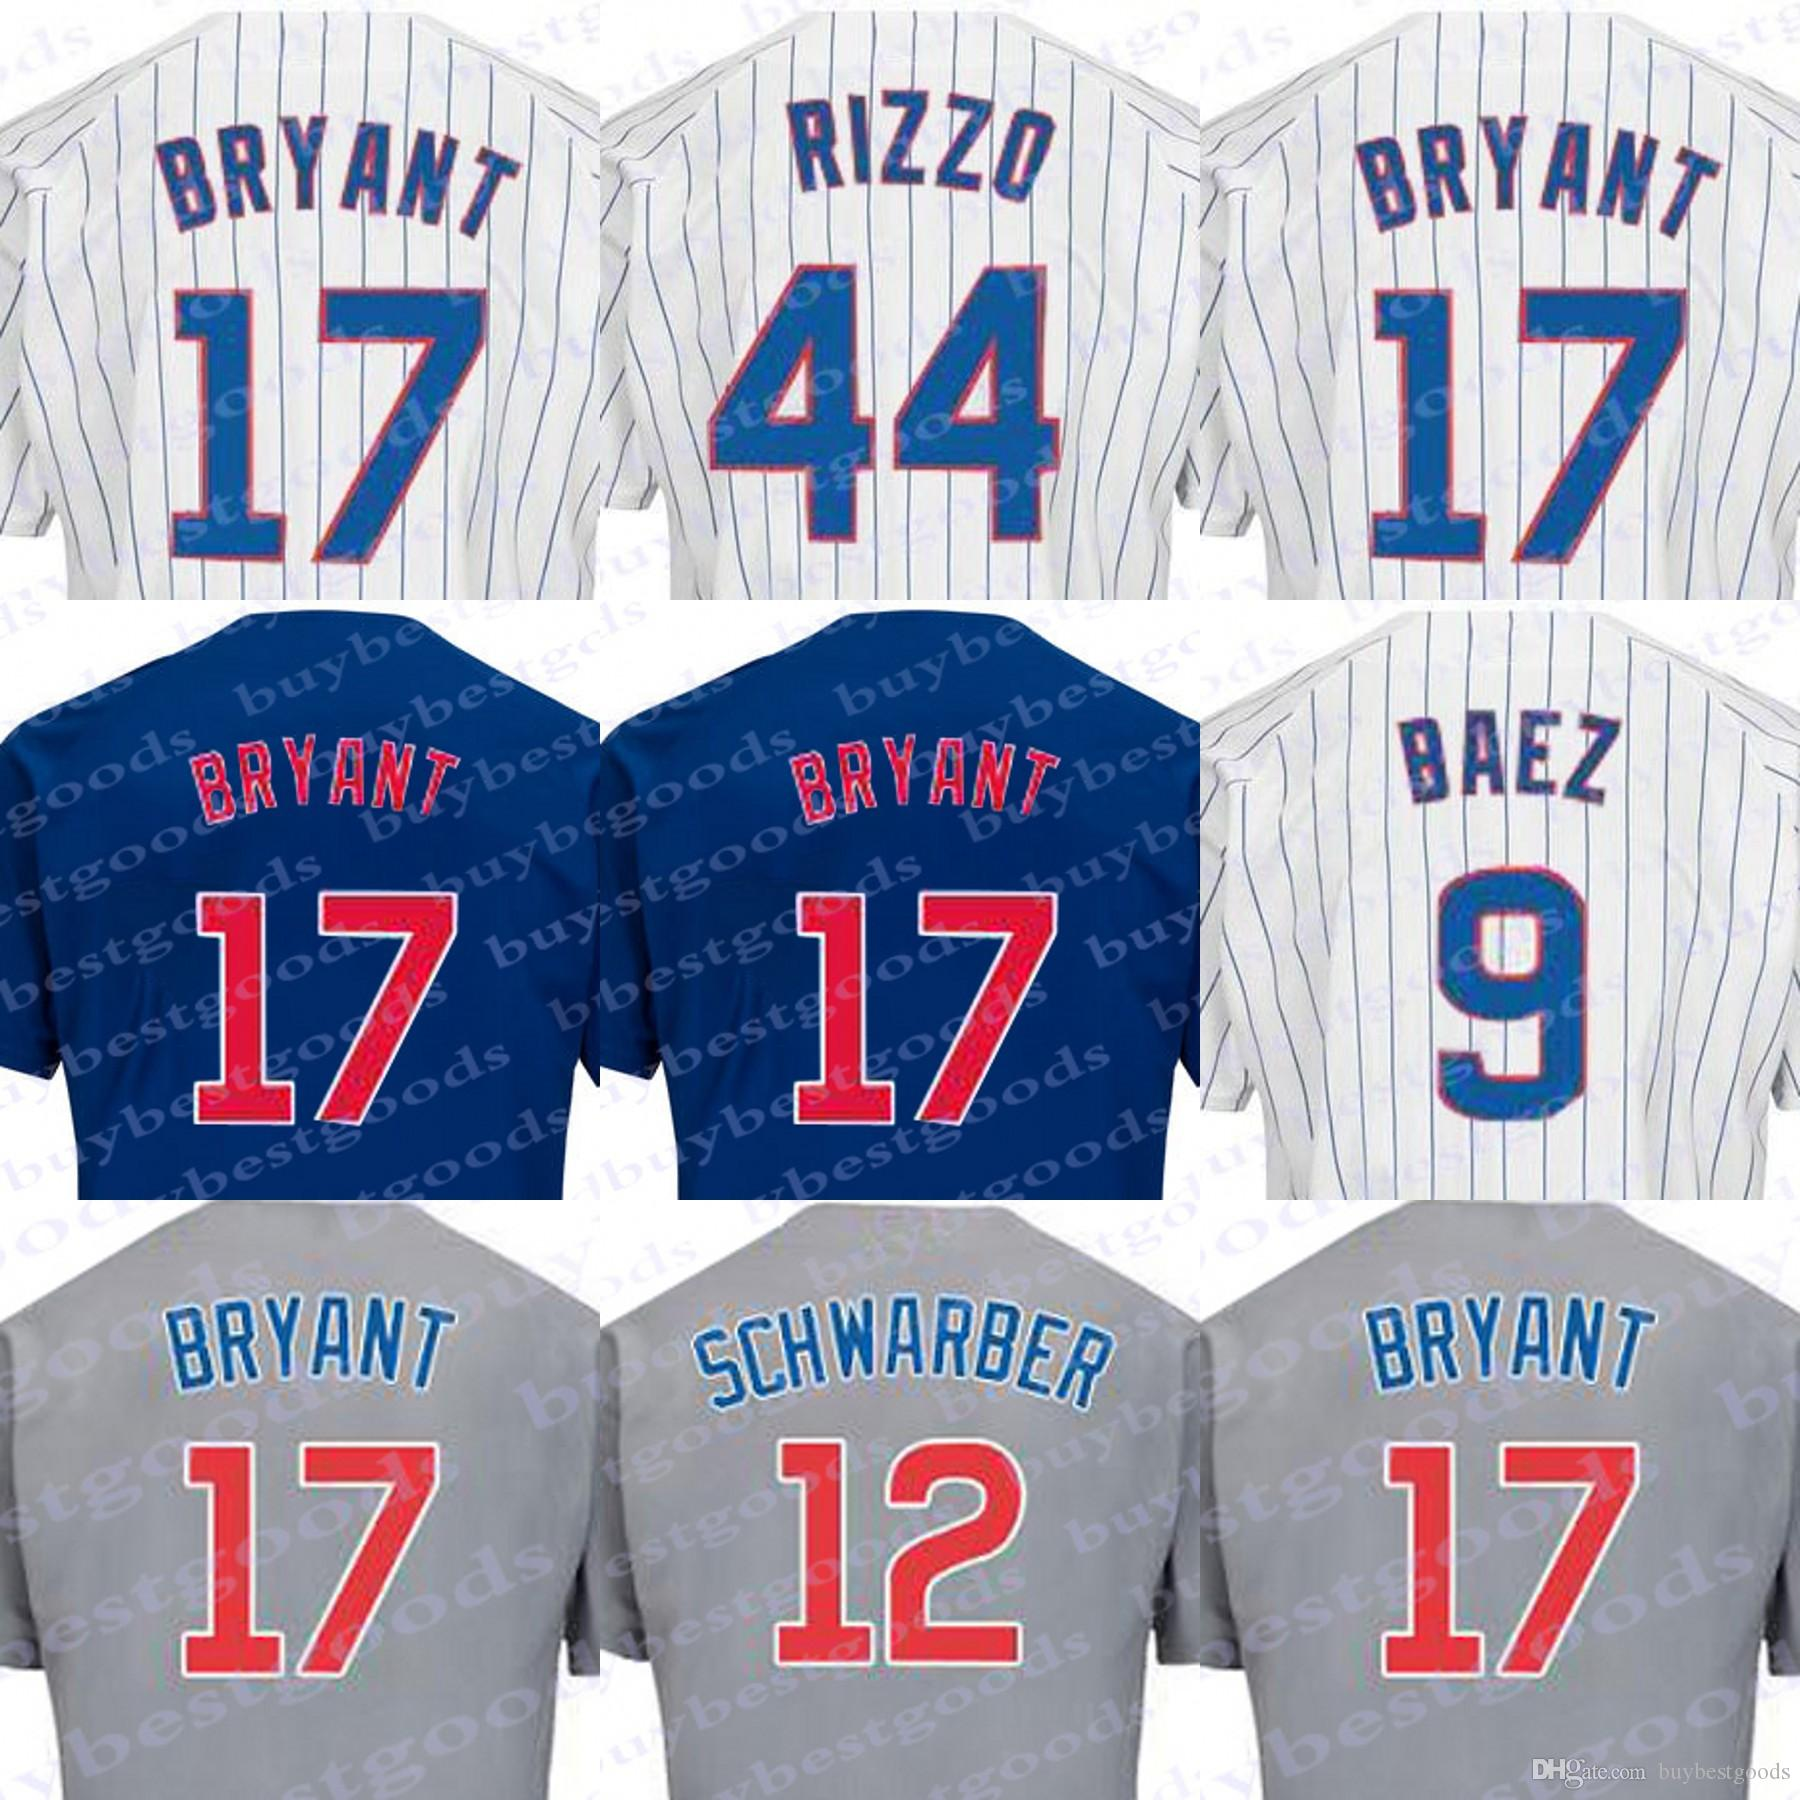 2018 chicago flexbase jerseys 17 44 9 javier baez 12 kyle schwarber 2016 baseball white blue grey je